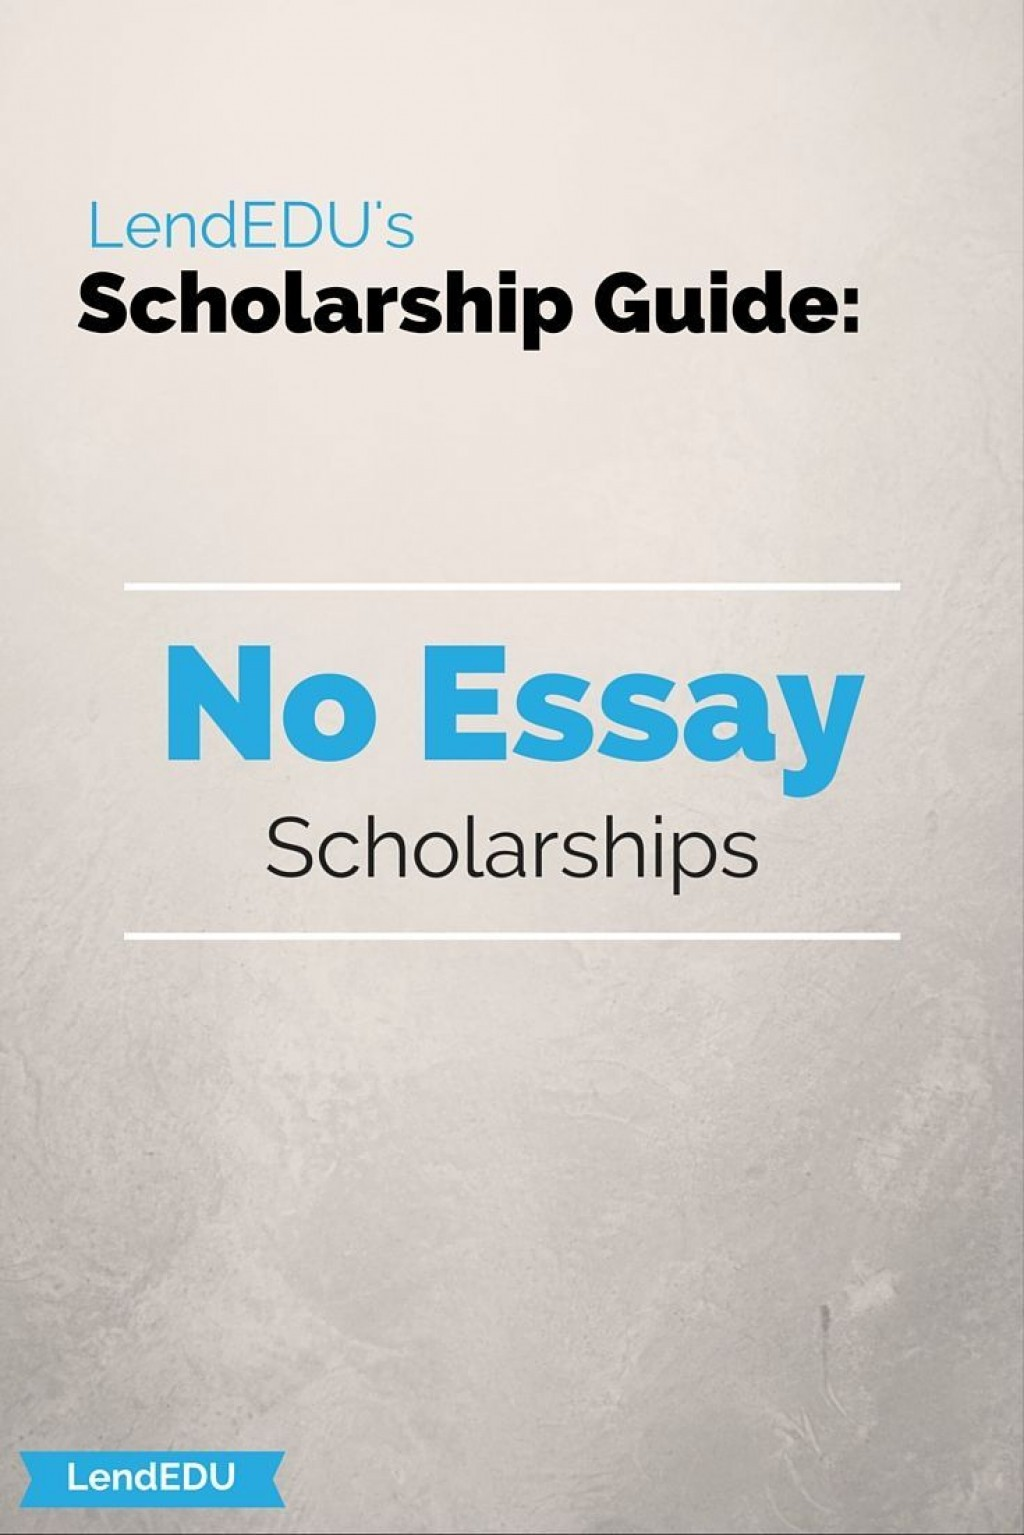 009 Essay Example Non Imposing Scholarships For High School Freshman No College Students 2019 Large